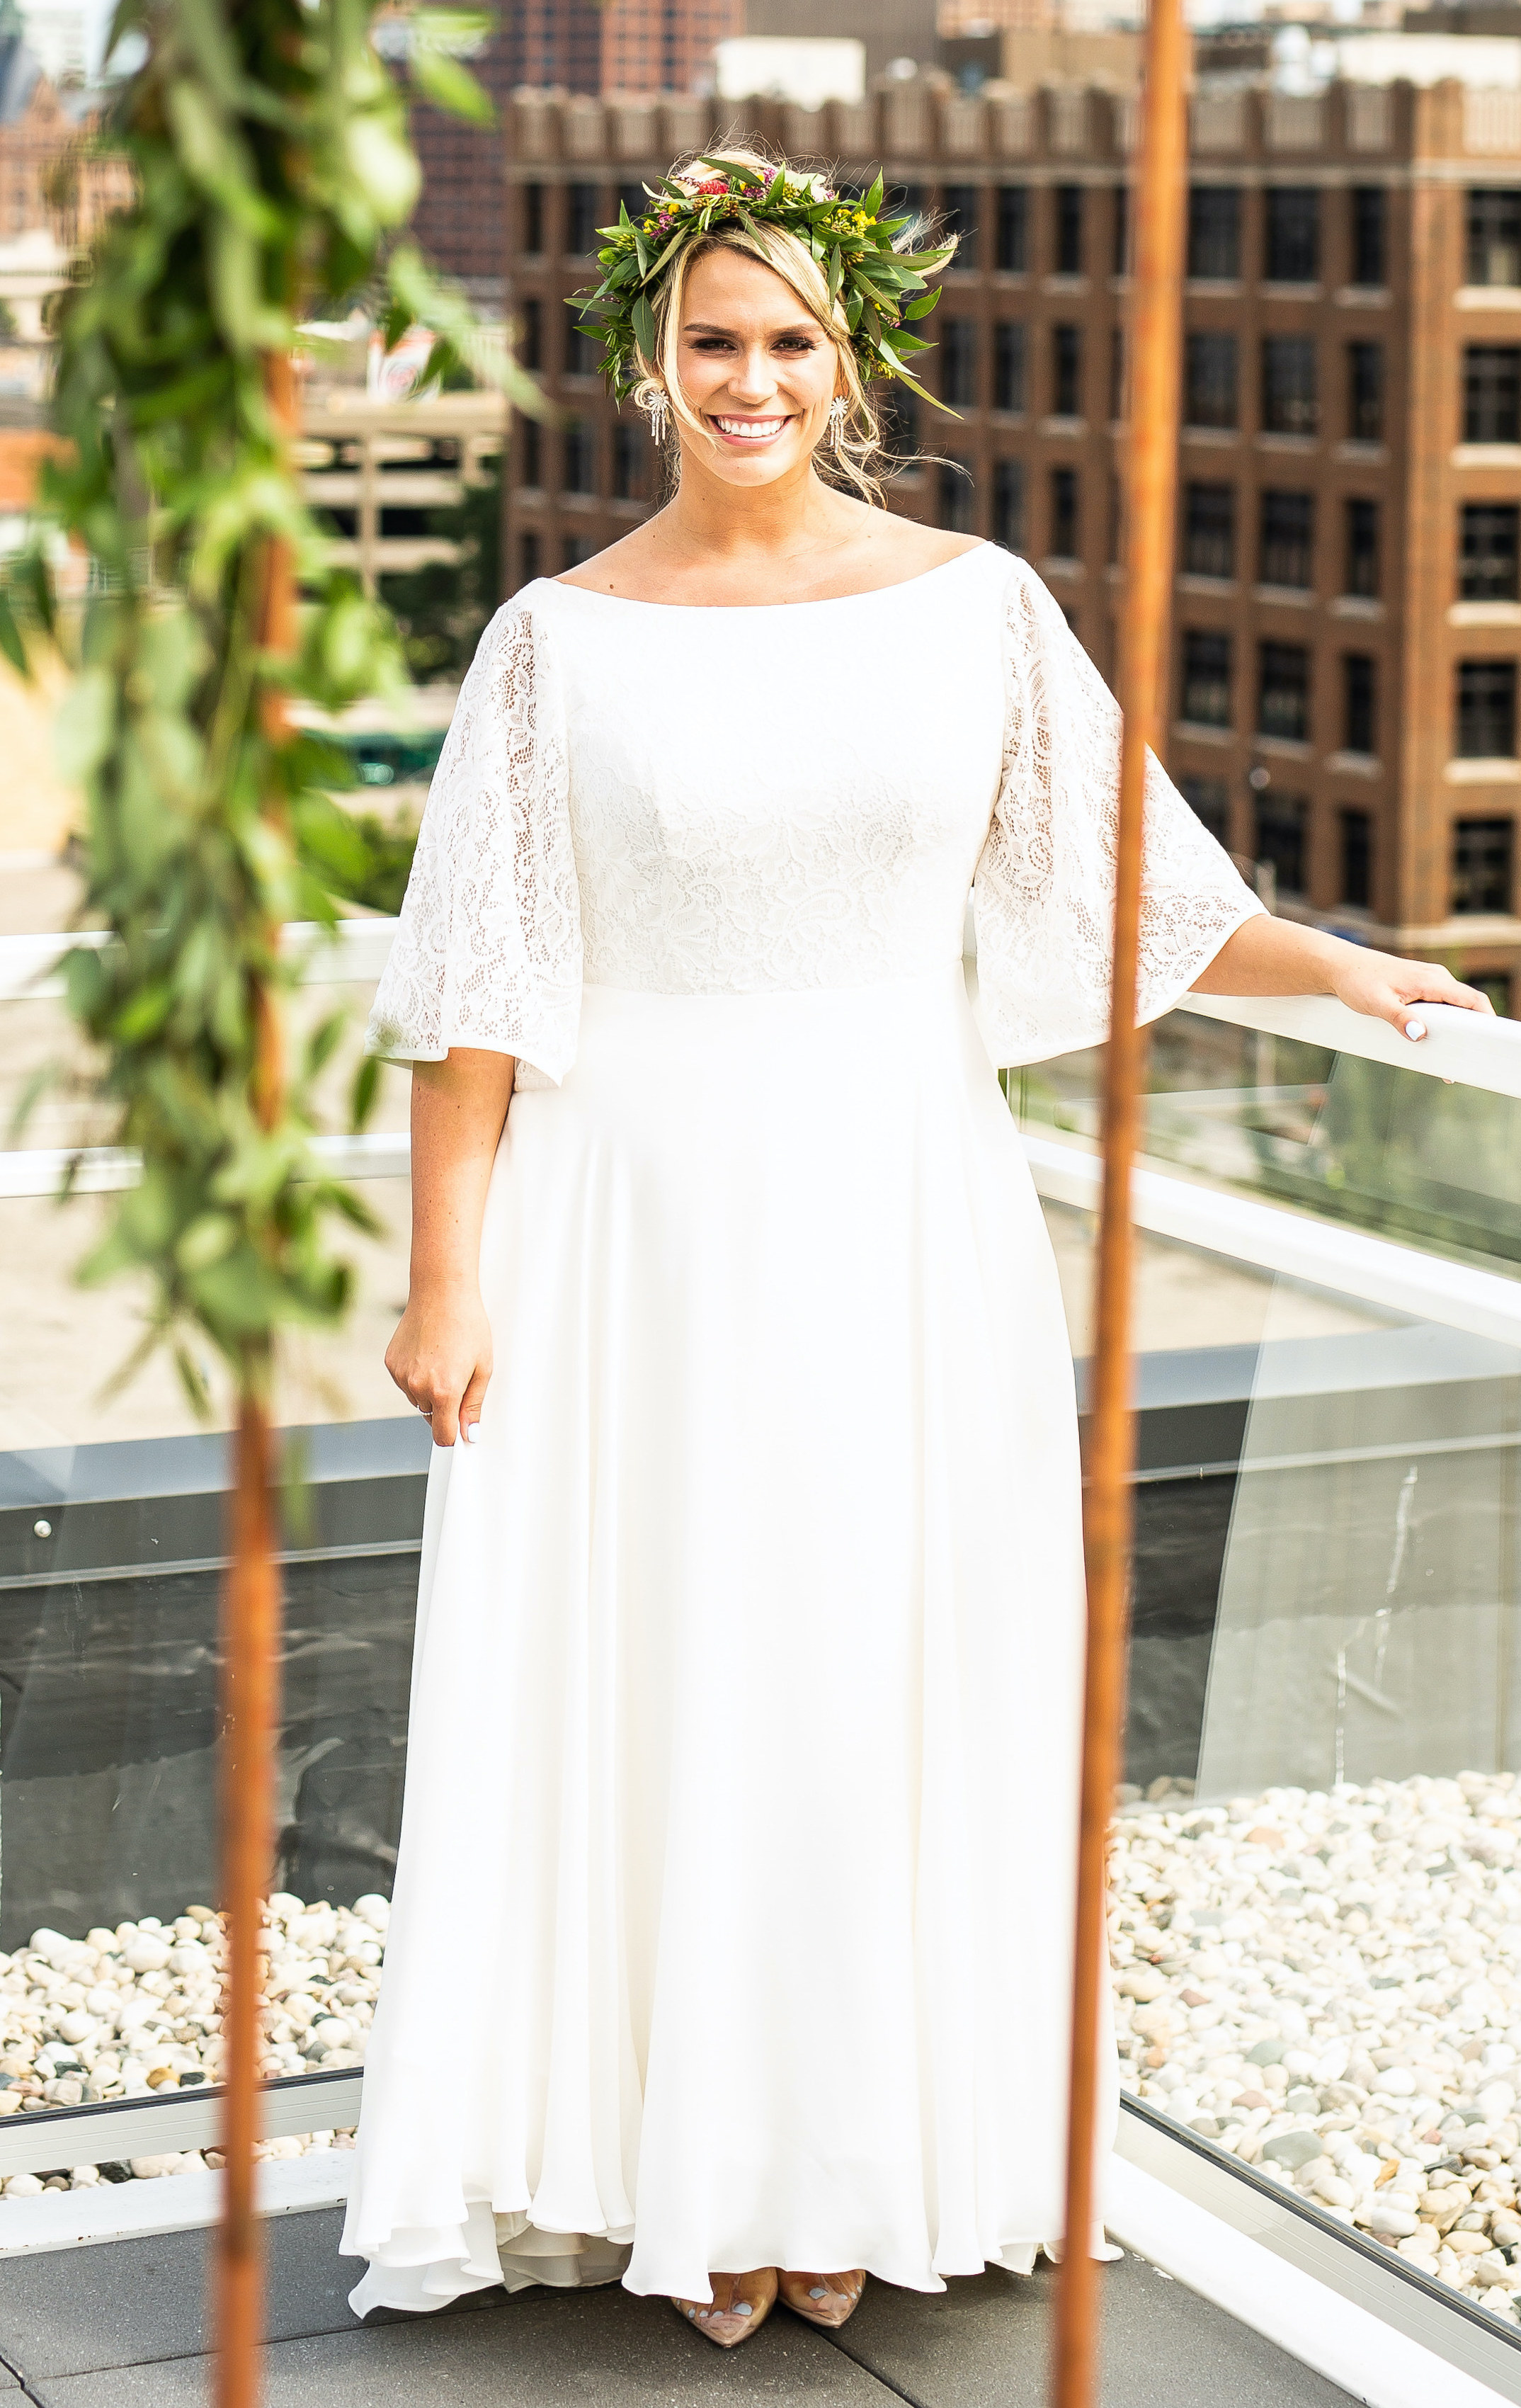 Anomalie specialized in making online wedding dresses for plus sized brides, including dresses with boat neckline and bell sleeves.